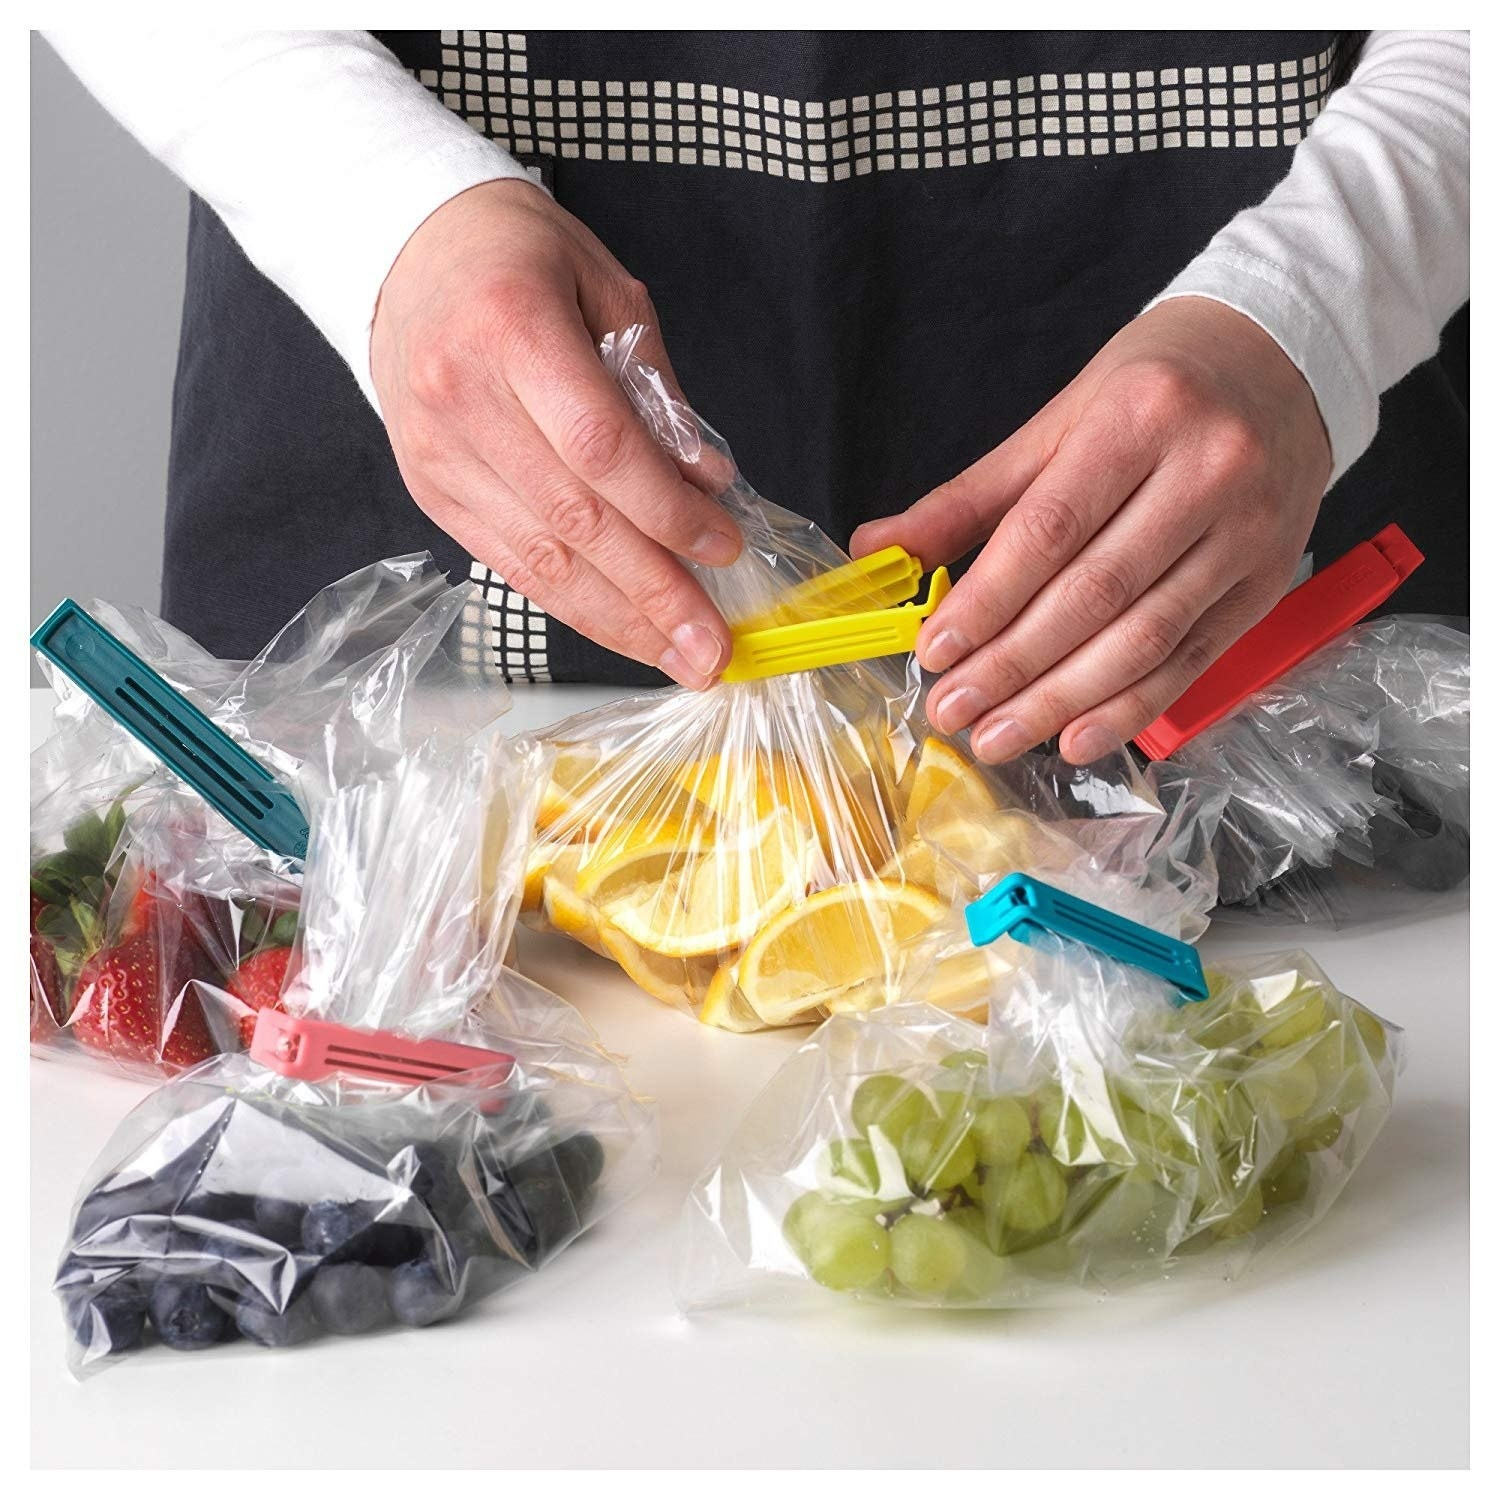 A person's hand using baggie seals to seal plastic bags with food in them.